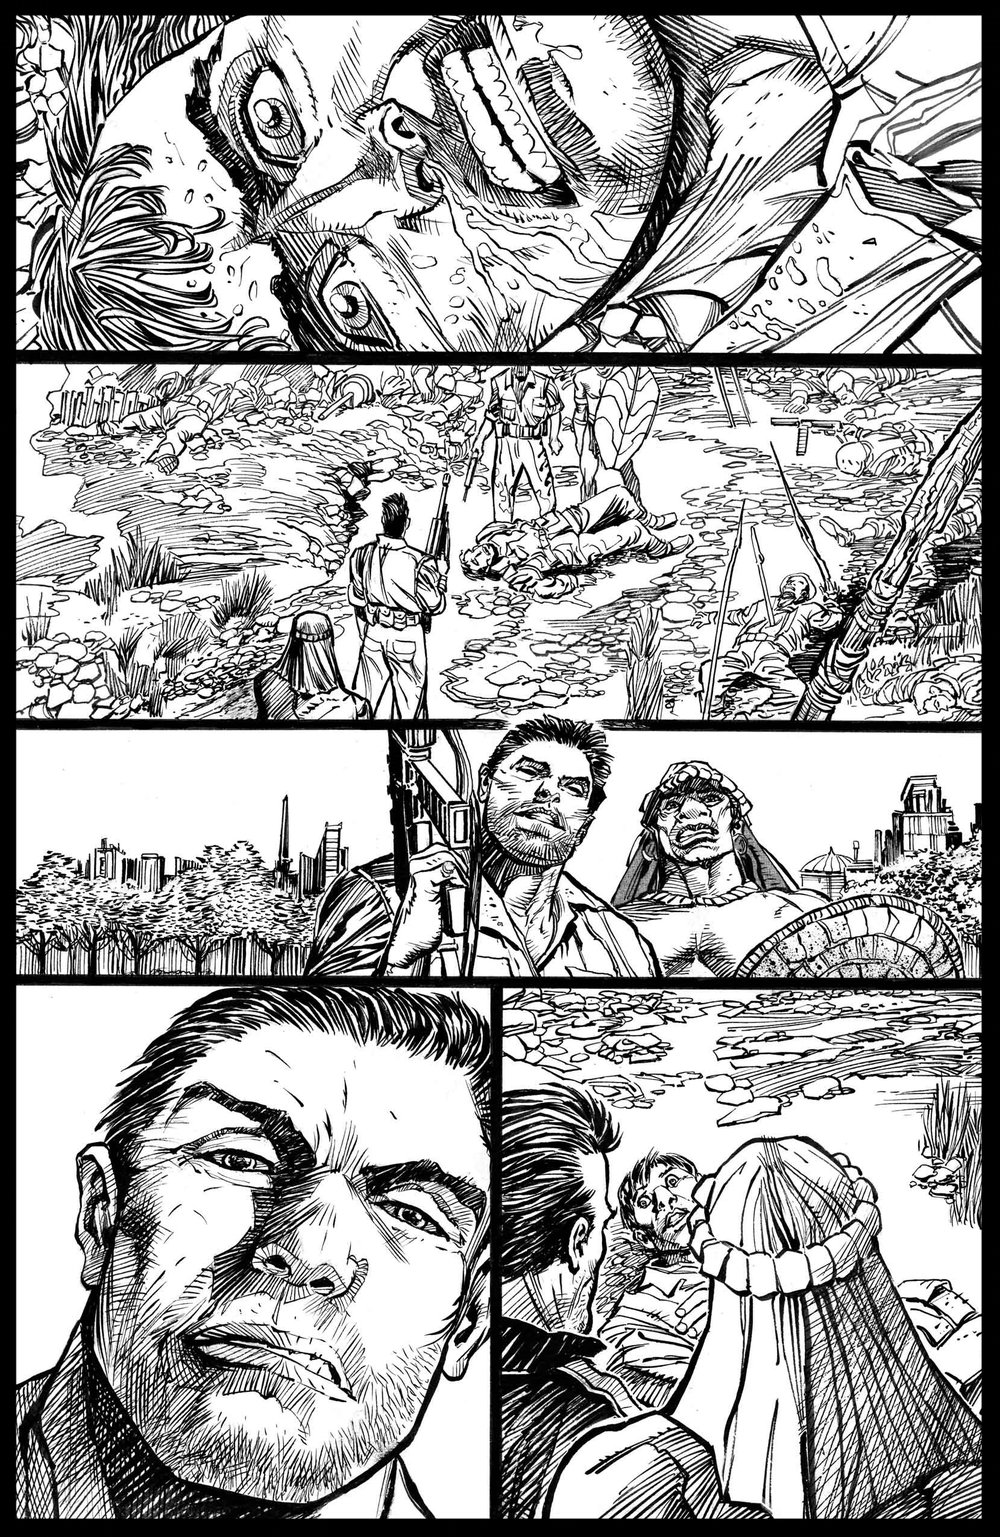 Flags of Our Fathers #3 - Page 1 - Pencils & Inks